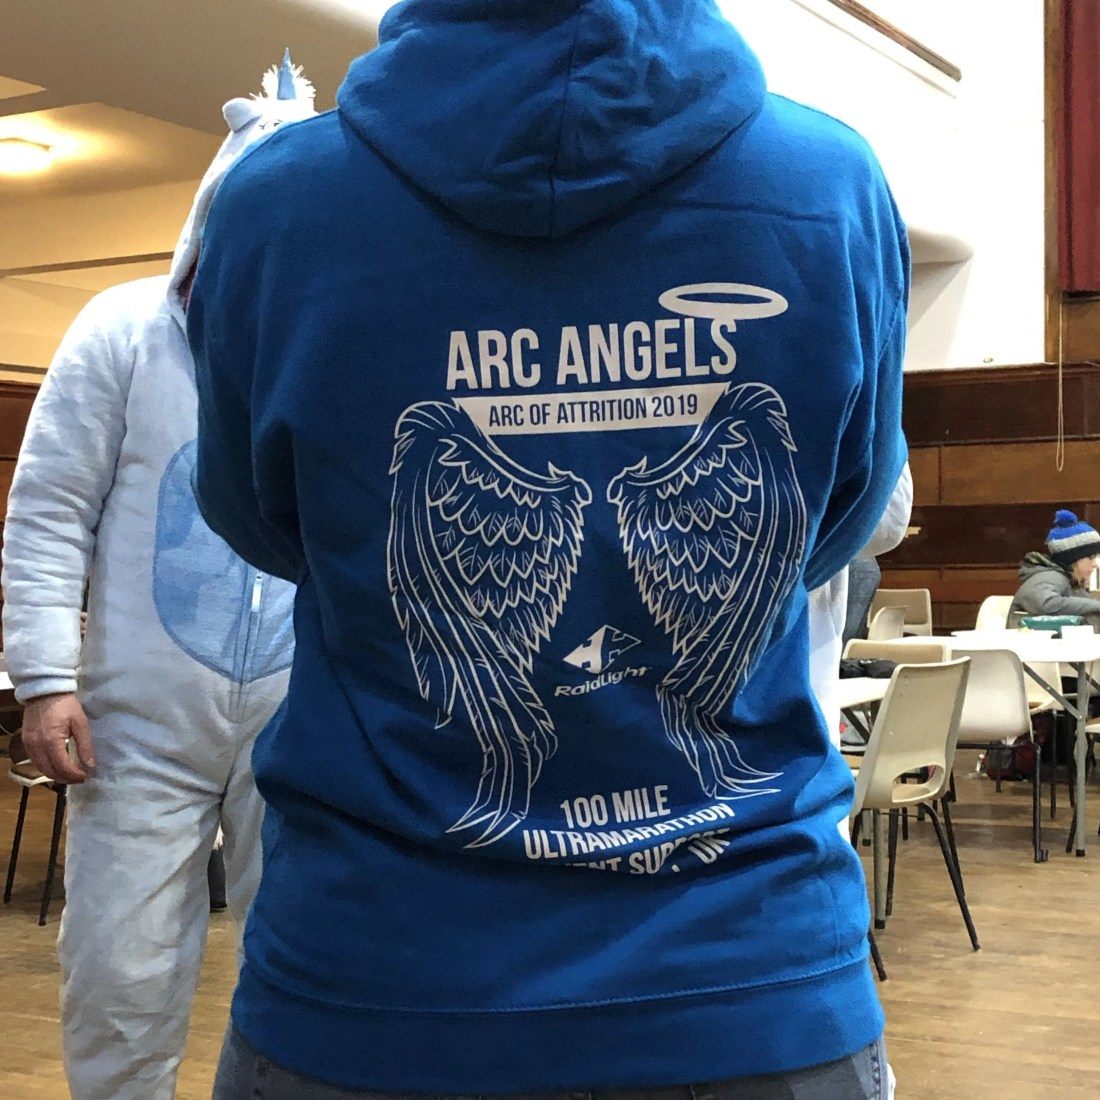 Lady's back in blue hooded top